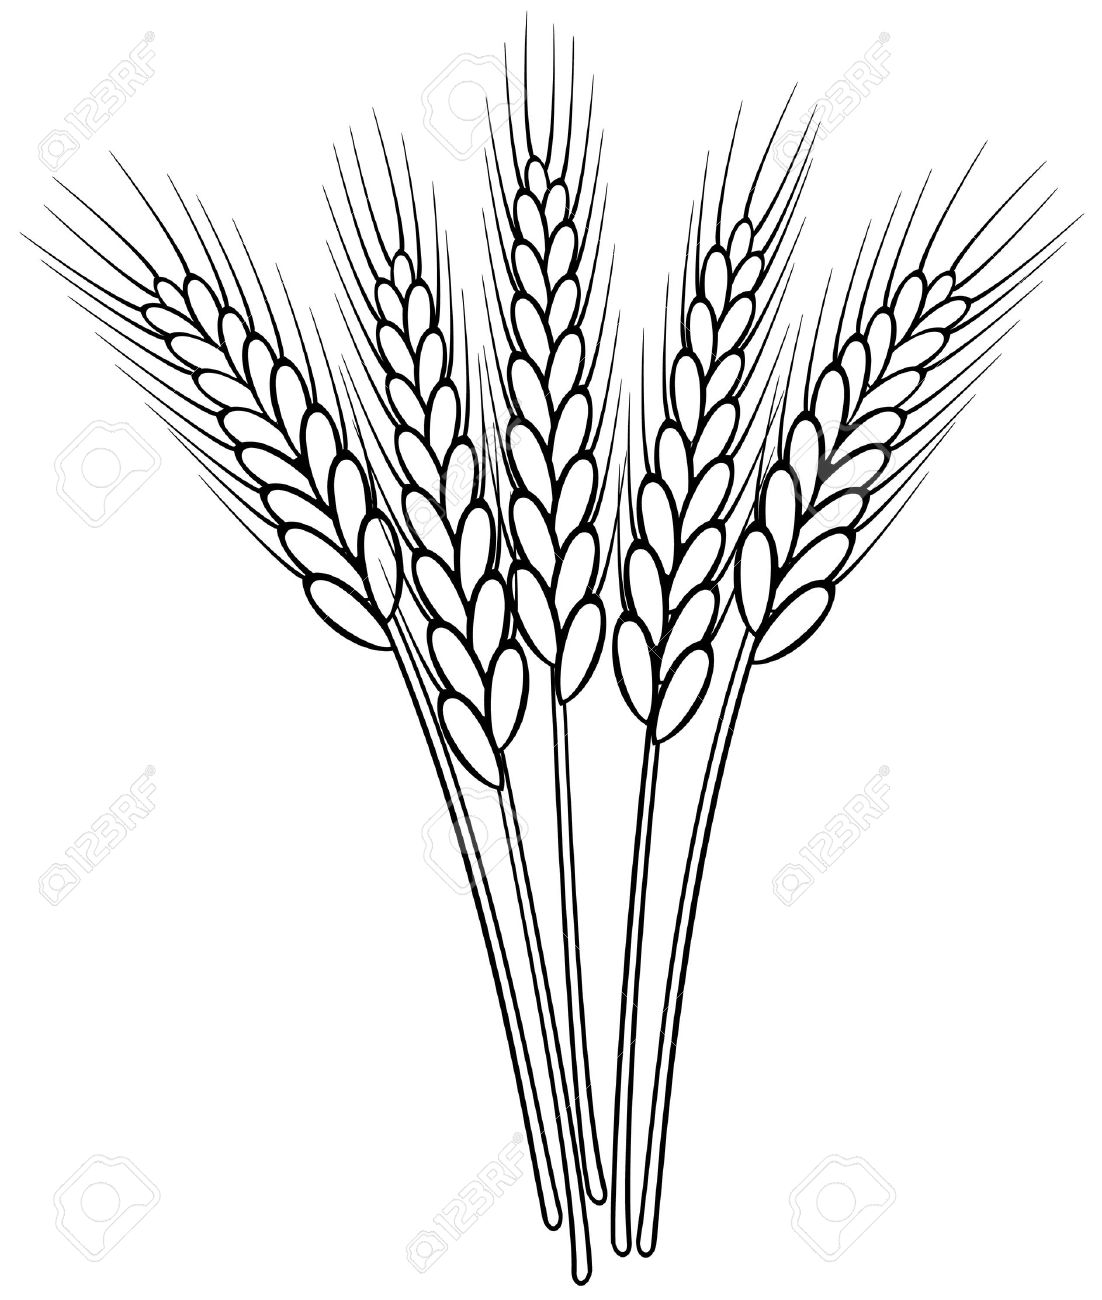 bunch of vector black and white wheat ears.